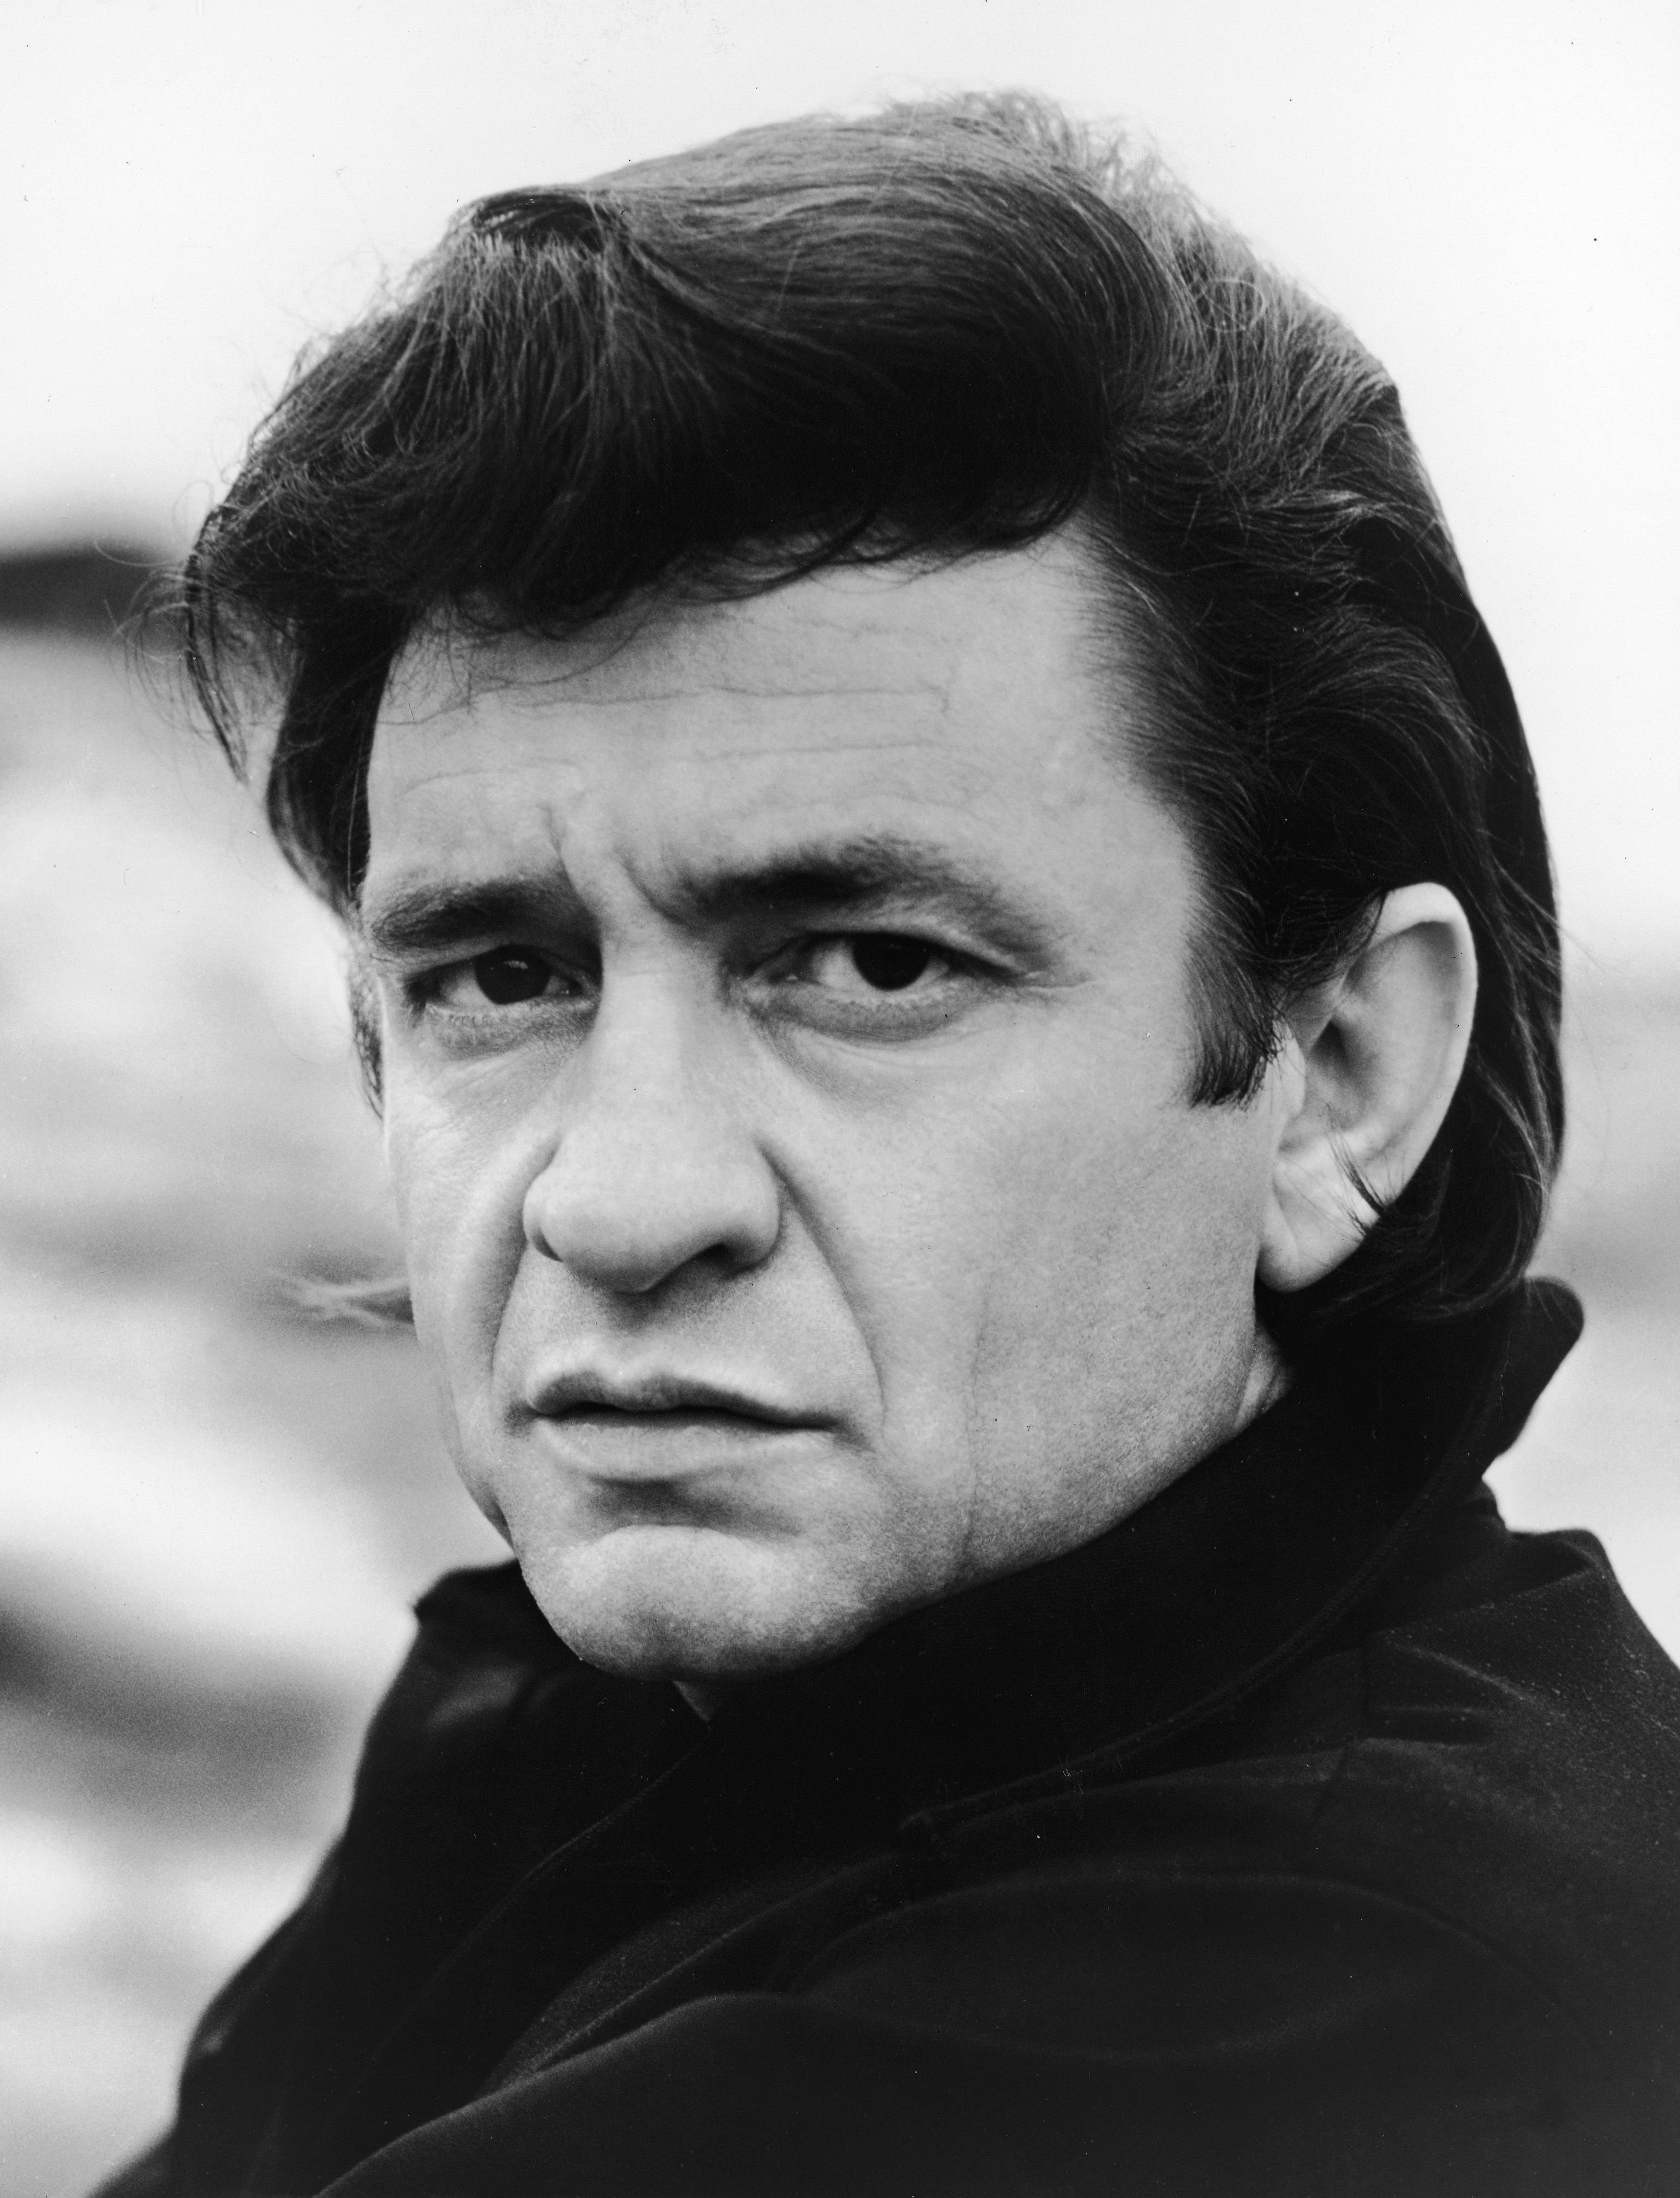 Country singer and songwriter Johnny Cash in 1969 | Source: Getty Images